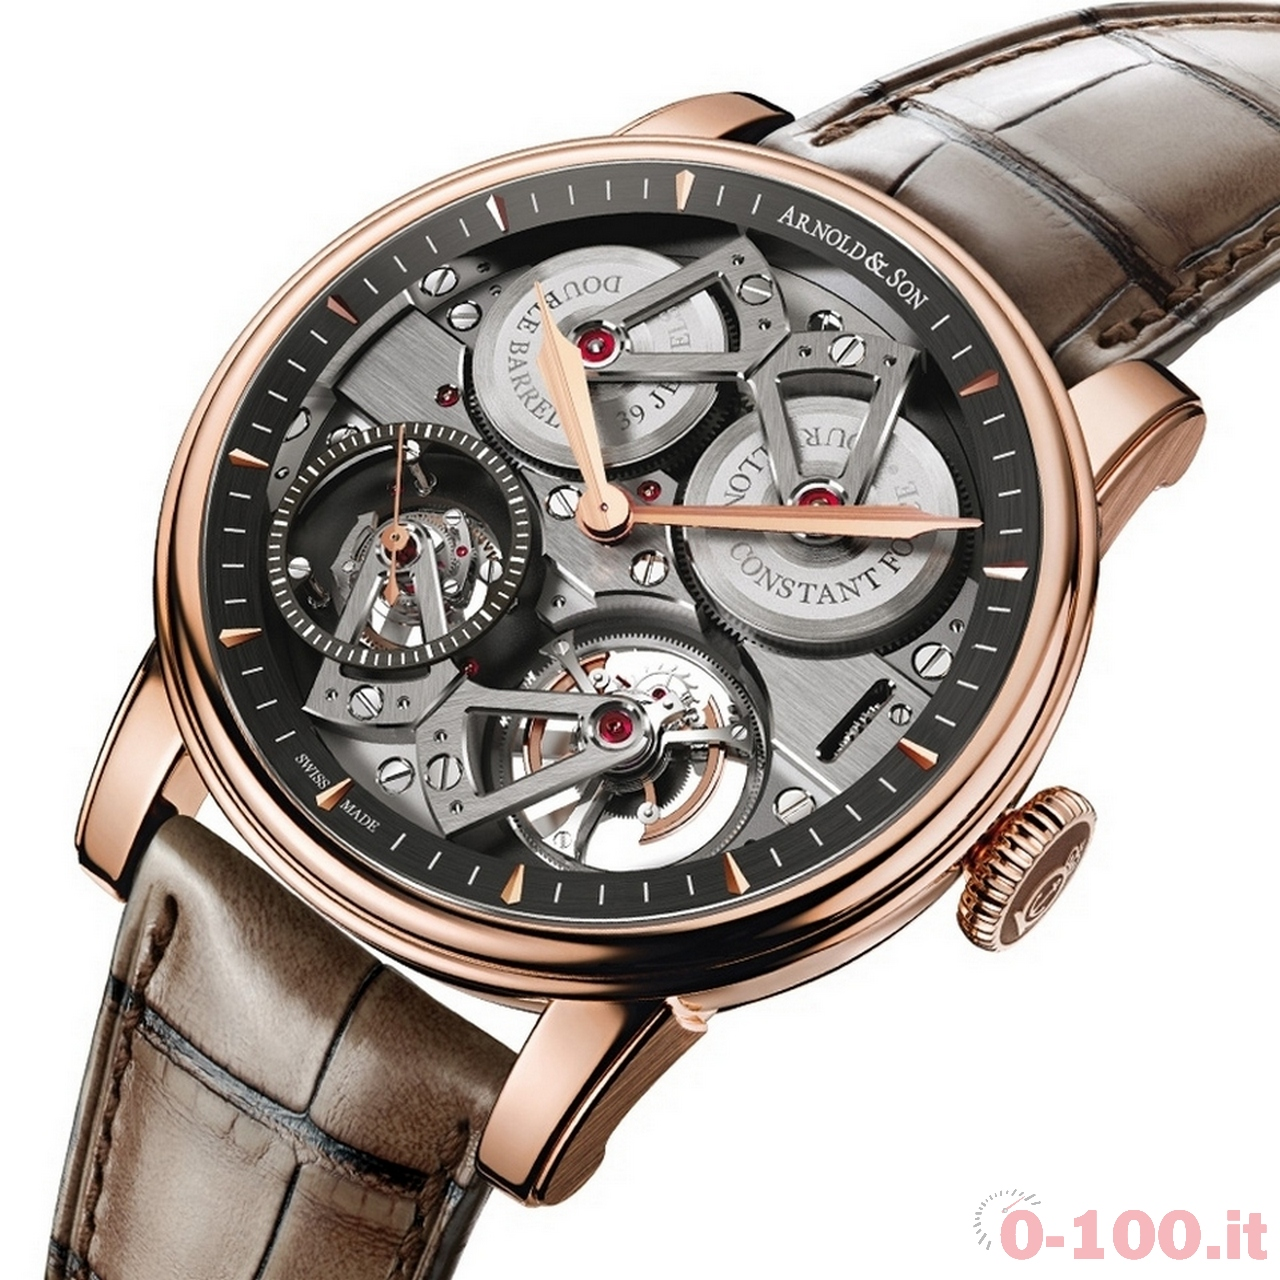 anteprima-baselworld-2016-arnold-son-constant-force-tourbillon-price_0-1001